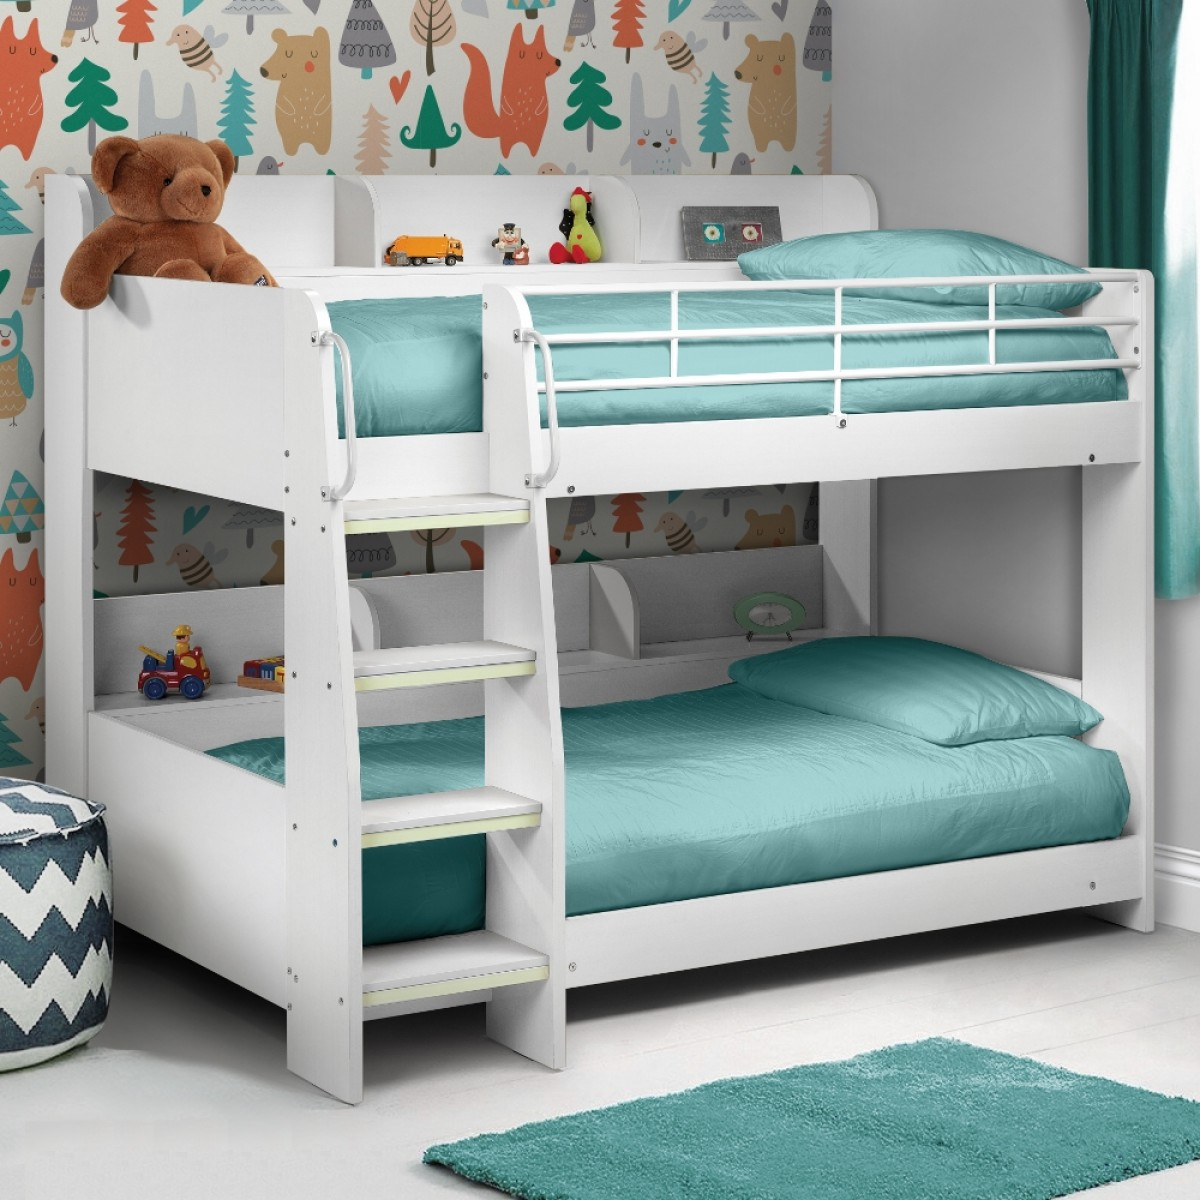 Bunk Beds For Kids Julian Bowen Domino White Wooden Kids Bunk Bed